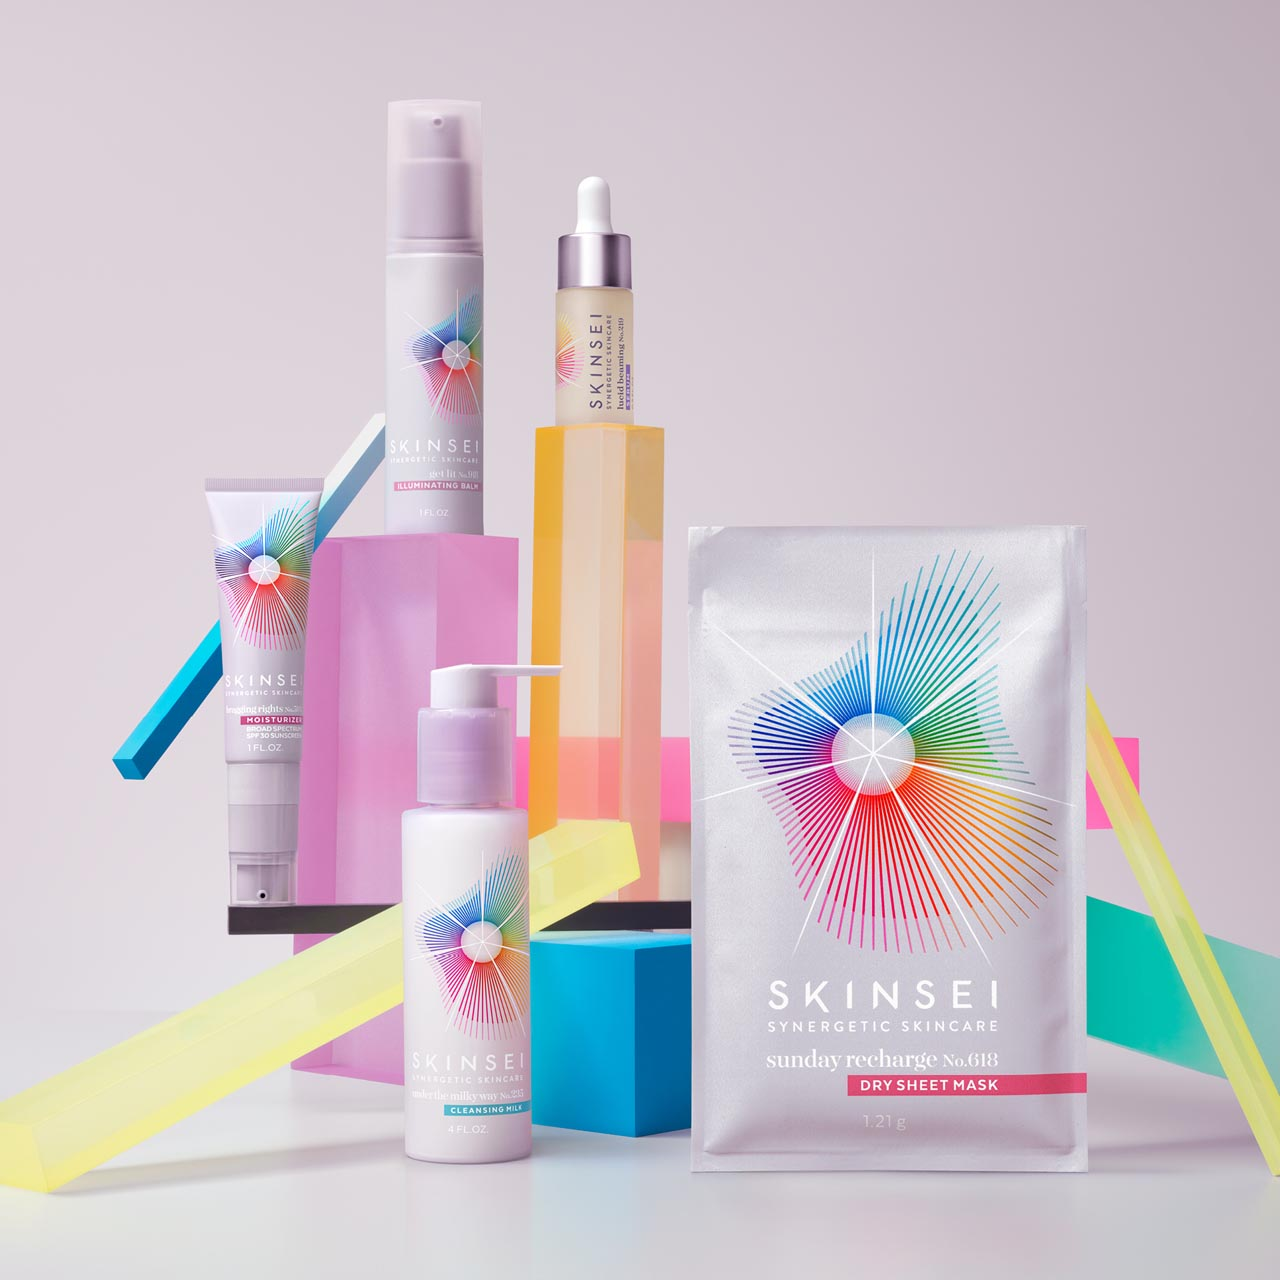 Subscription kit of Skinsei products, arranged on pastel-colored geometric shapes.